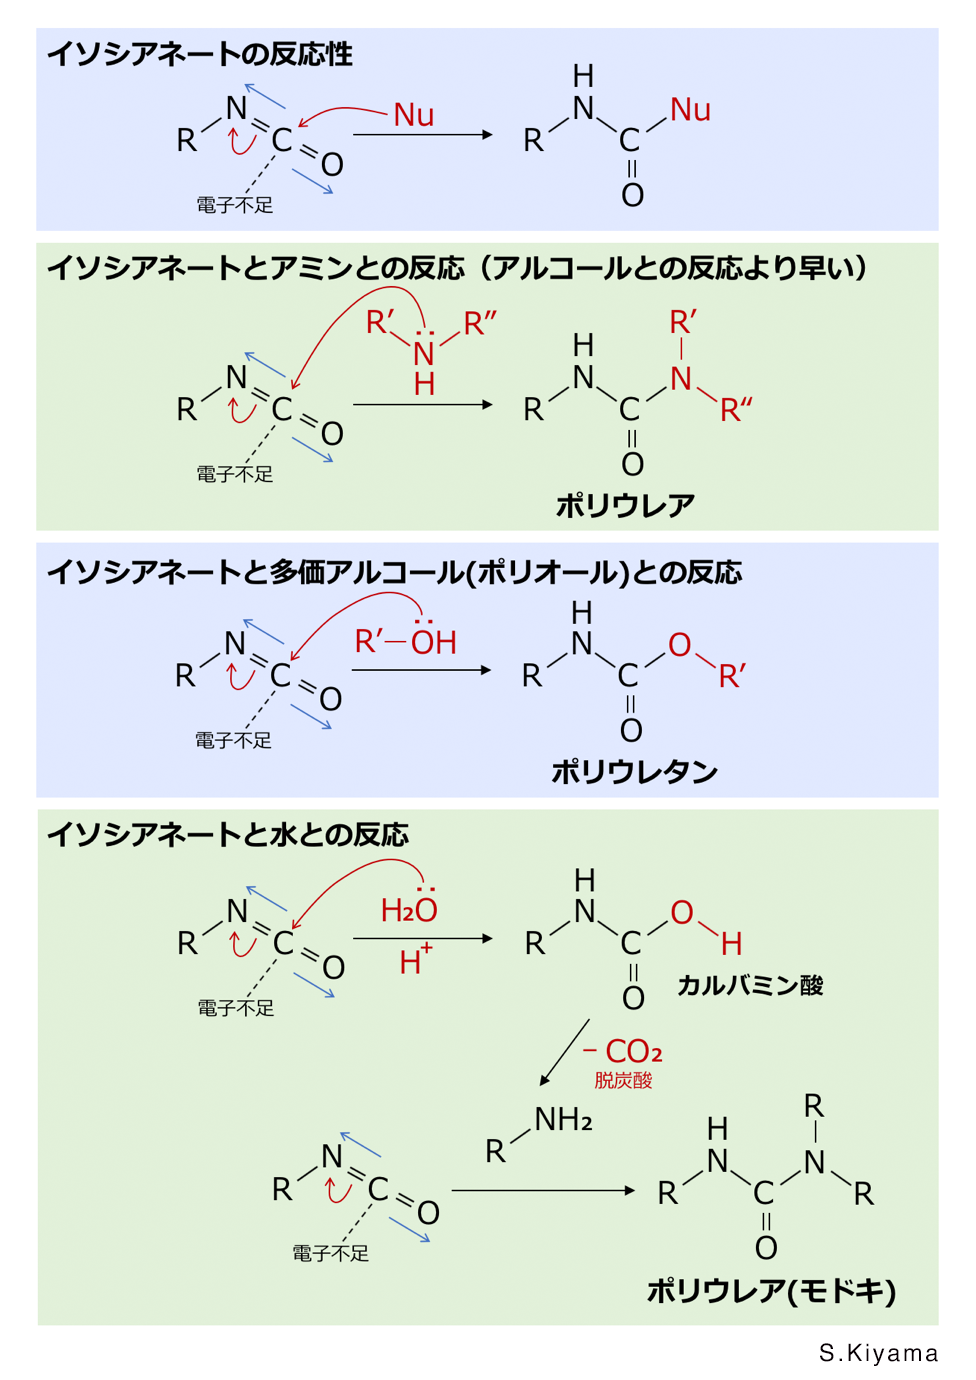 ReactionOfIsocyanate.png